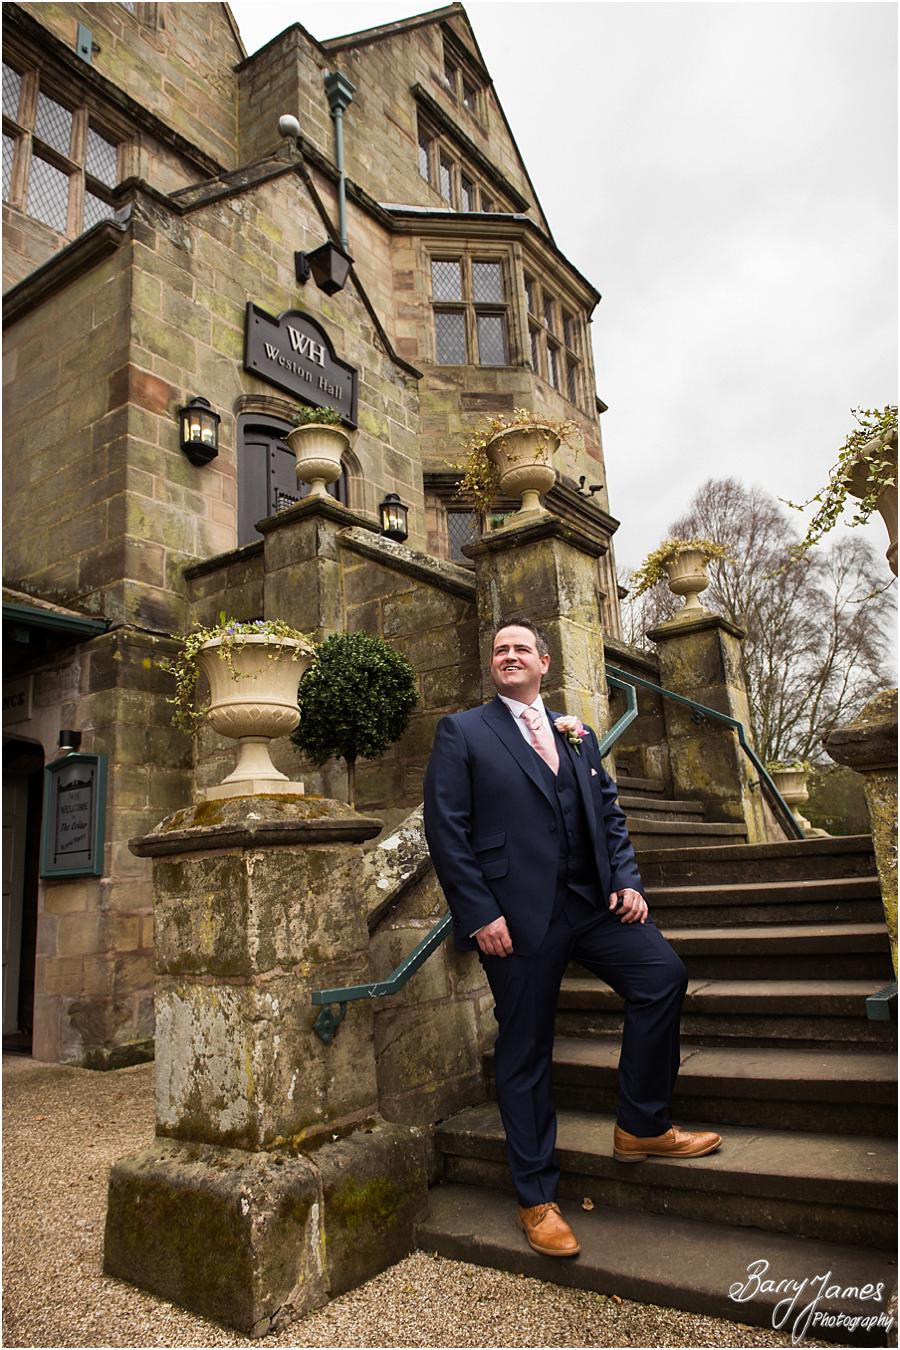 Creative and contemporary portraits of groom and ushers at Weston Hall in Stafford by Stafford Wedding Photographer Barry James